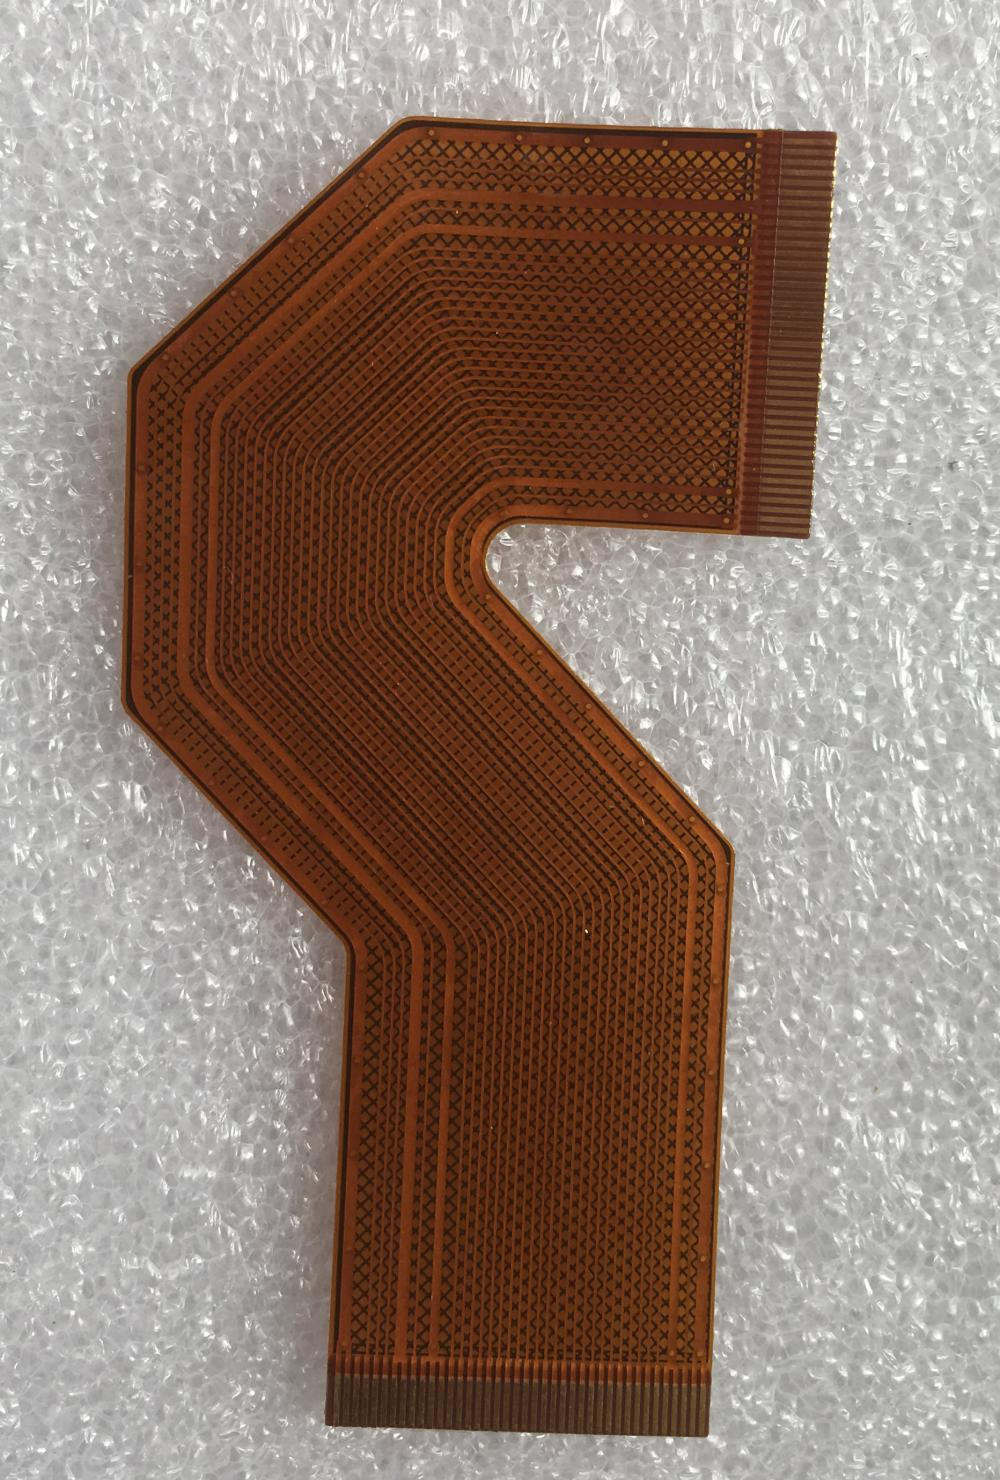 0.2mm ENIG Flex PCB